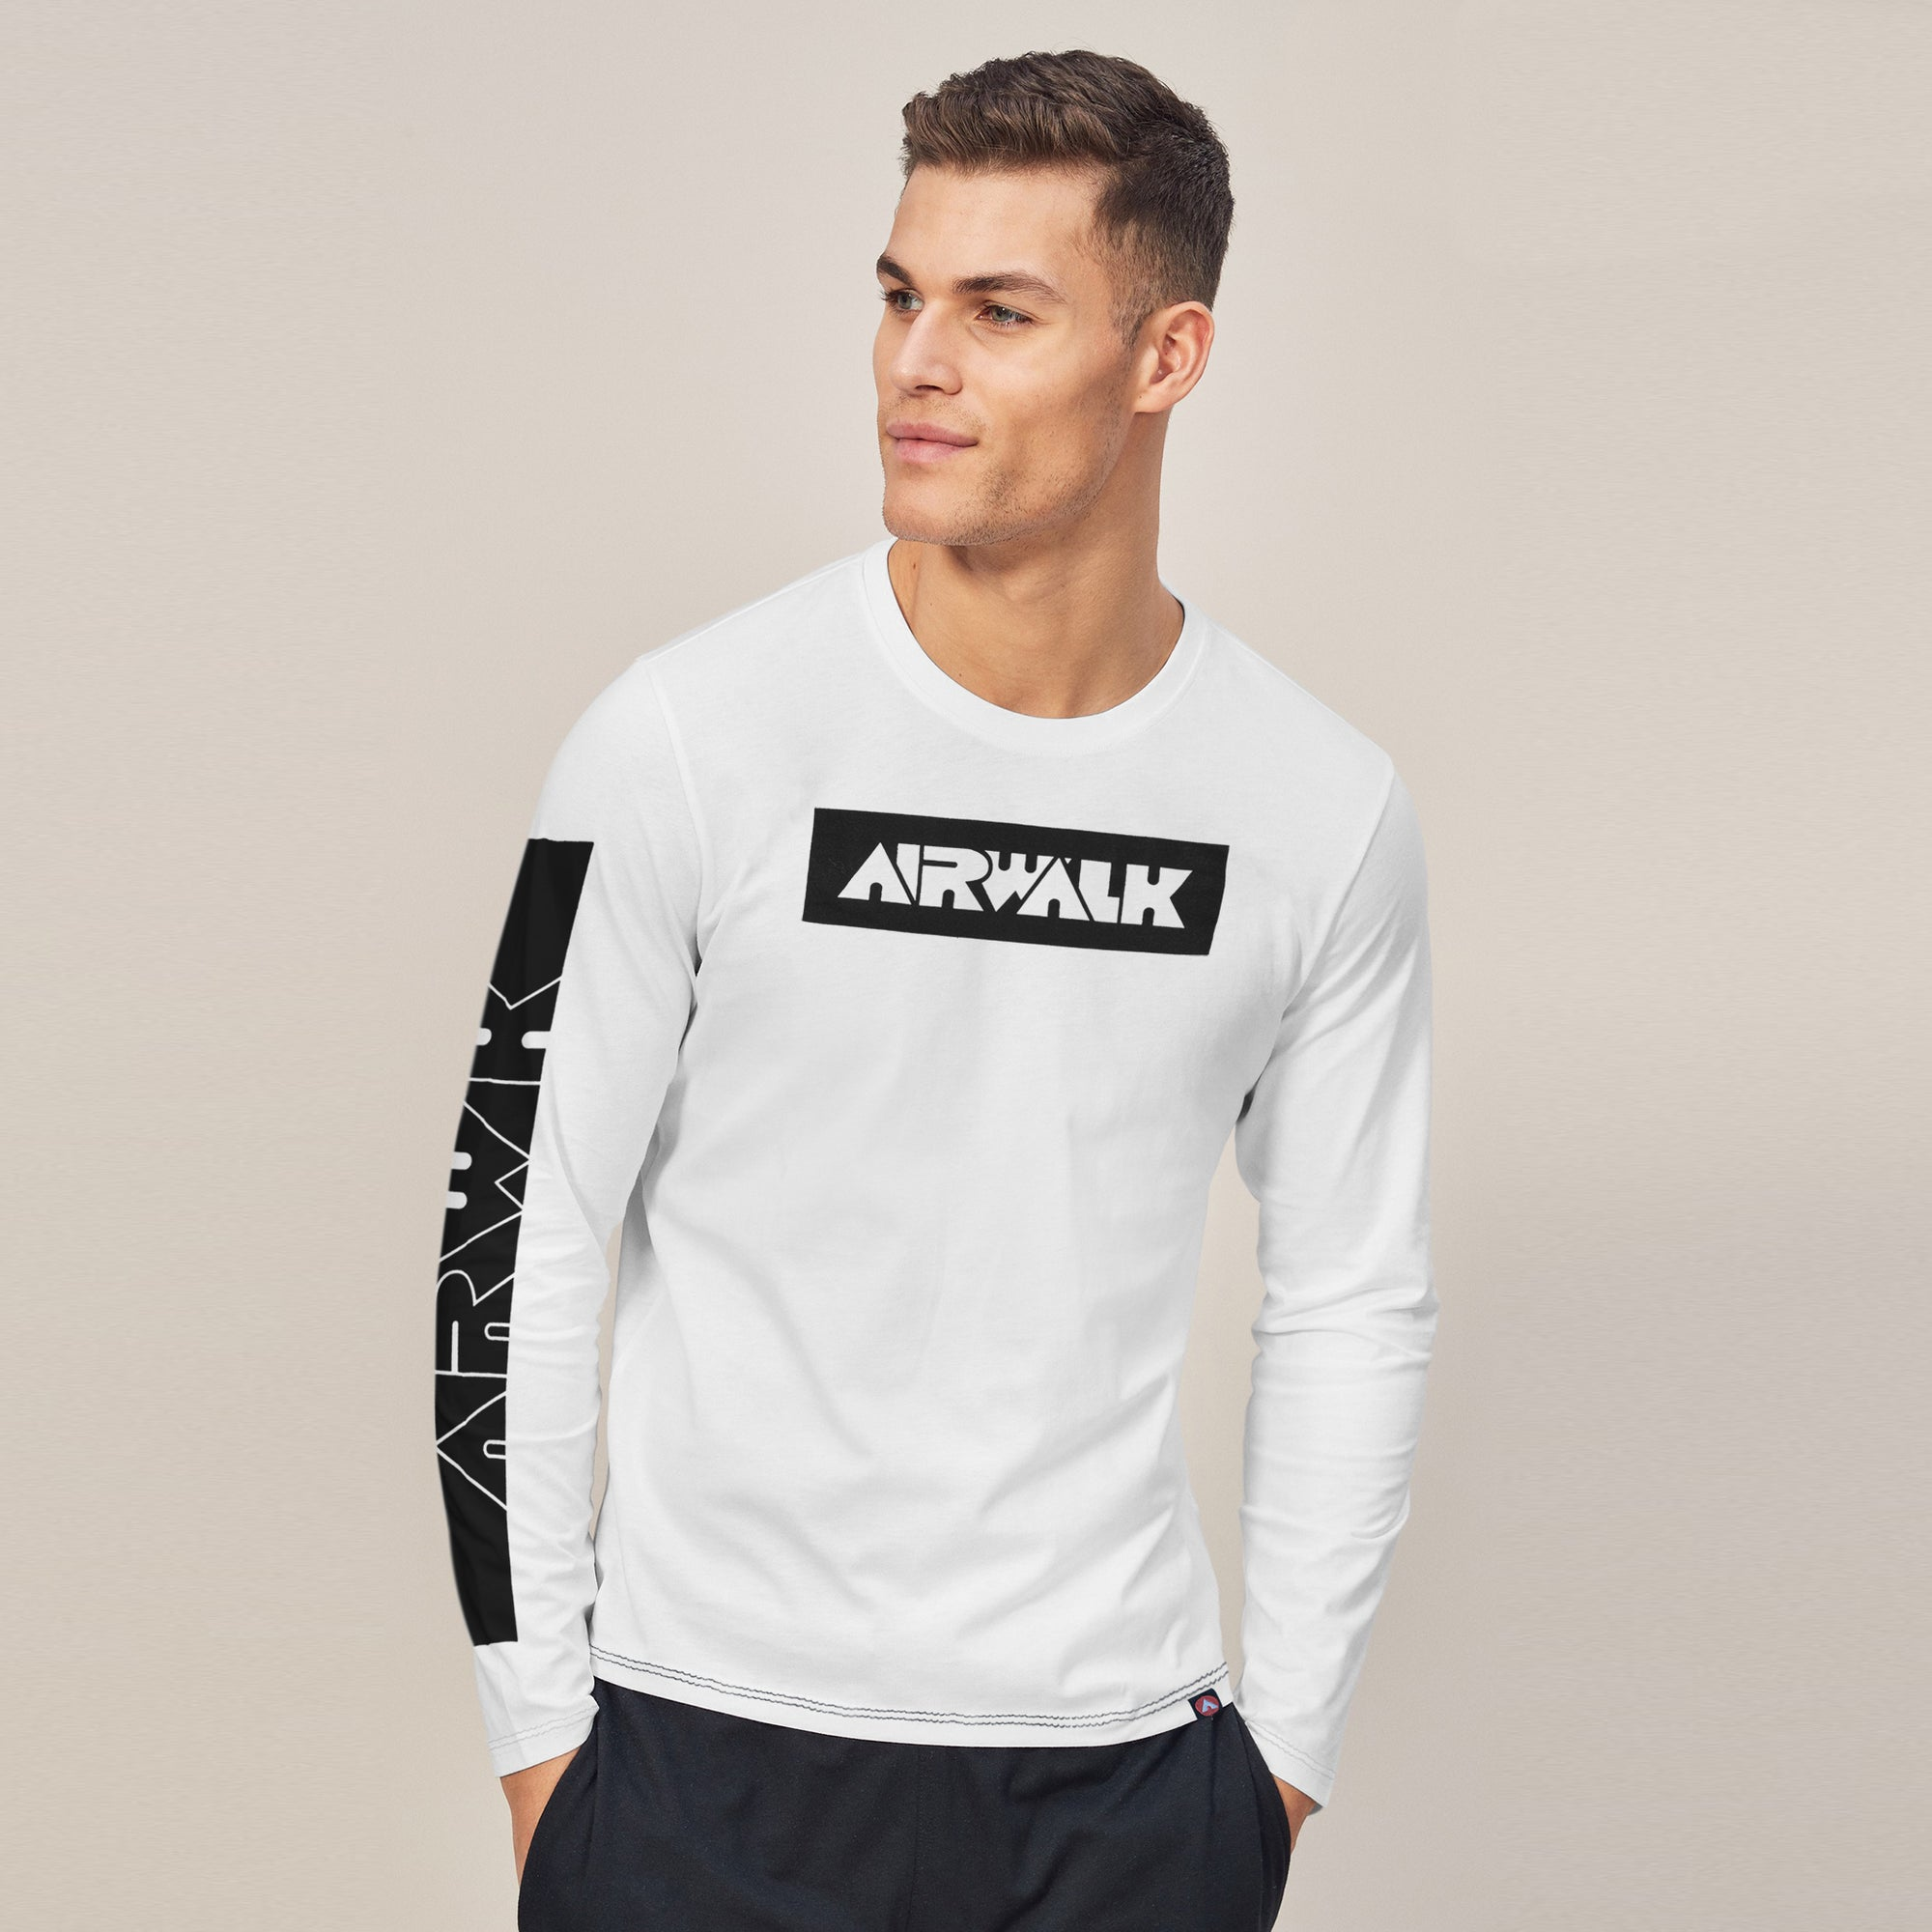 Air Walk Single Jersey Shirt For Men-White-BE8143